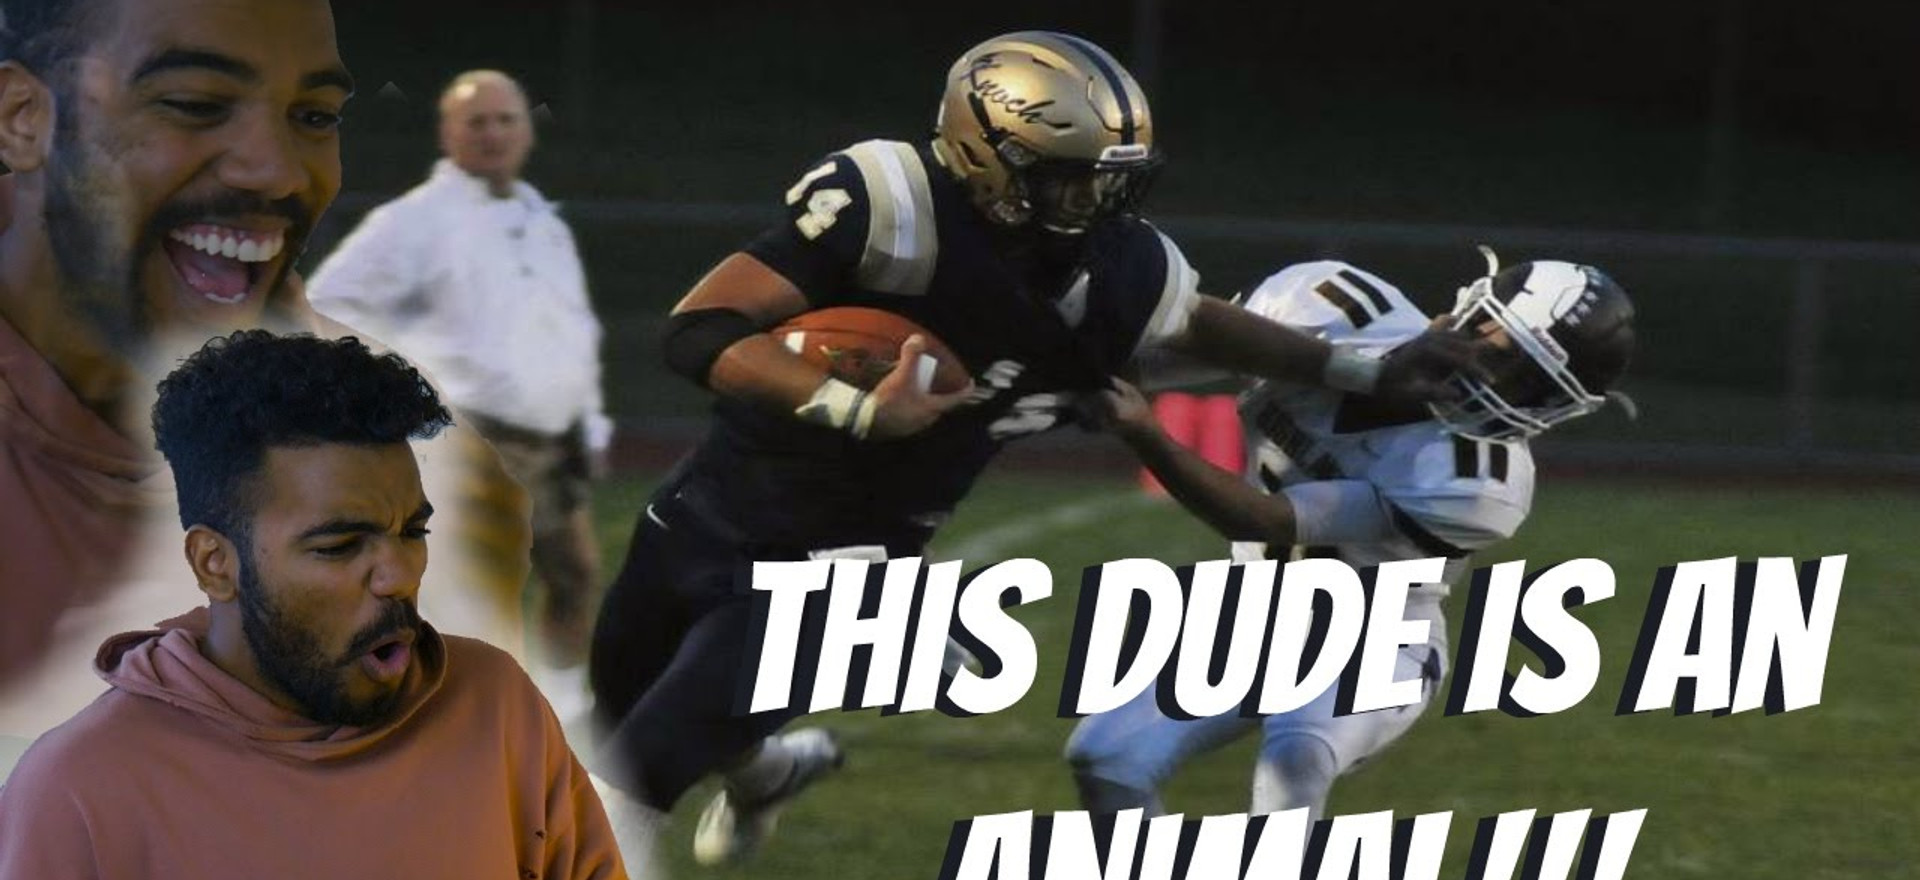 Subscriber's Teammate is an ANIMAL!!!- Mac Christy Highlight [Reaction]